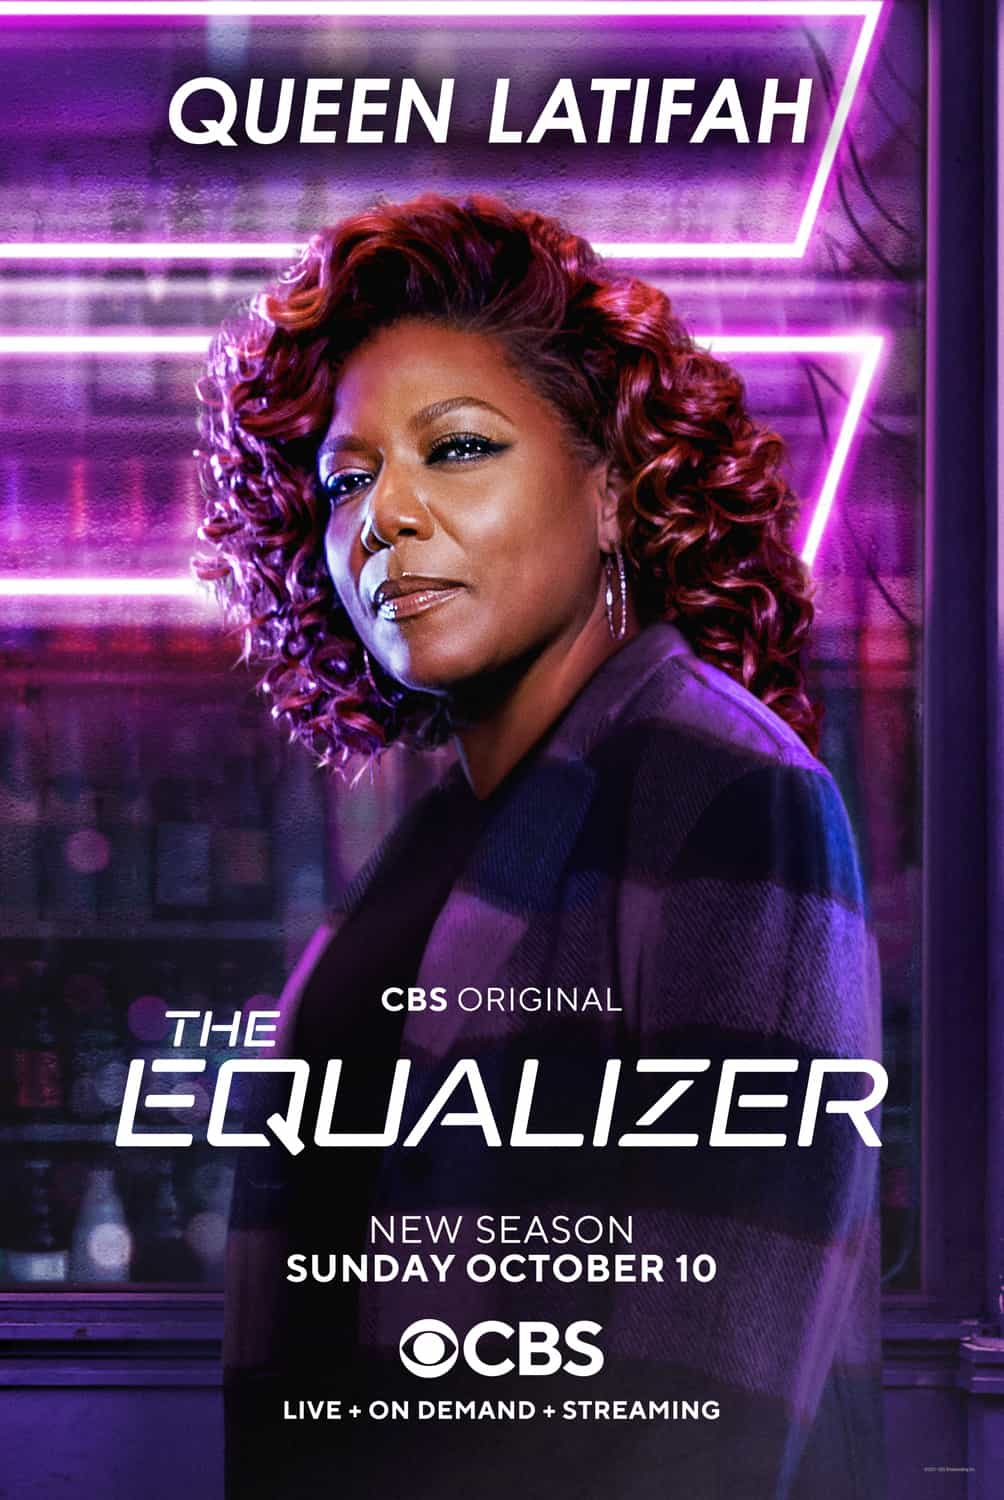 The Equalizer Season 2 Poster